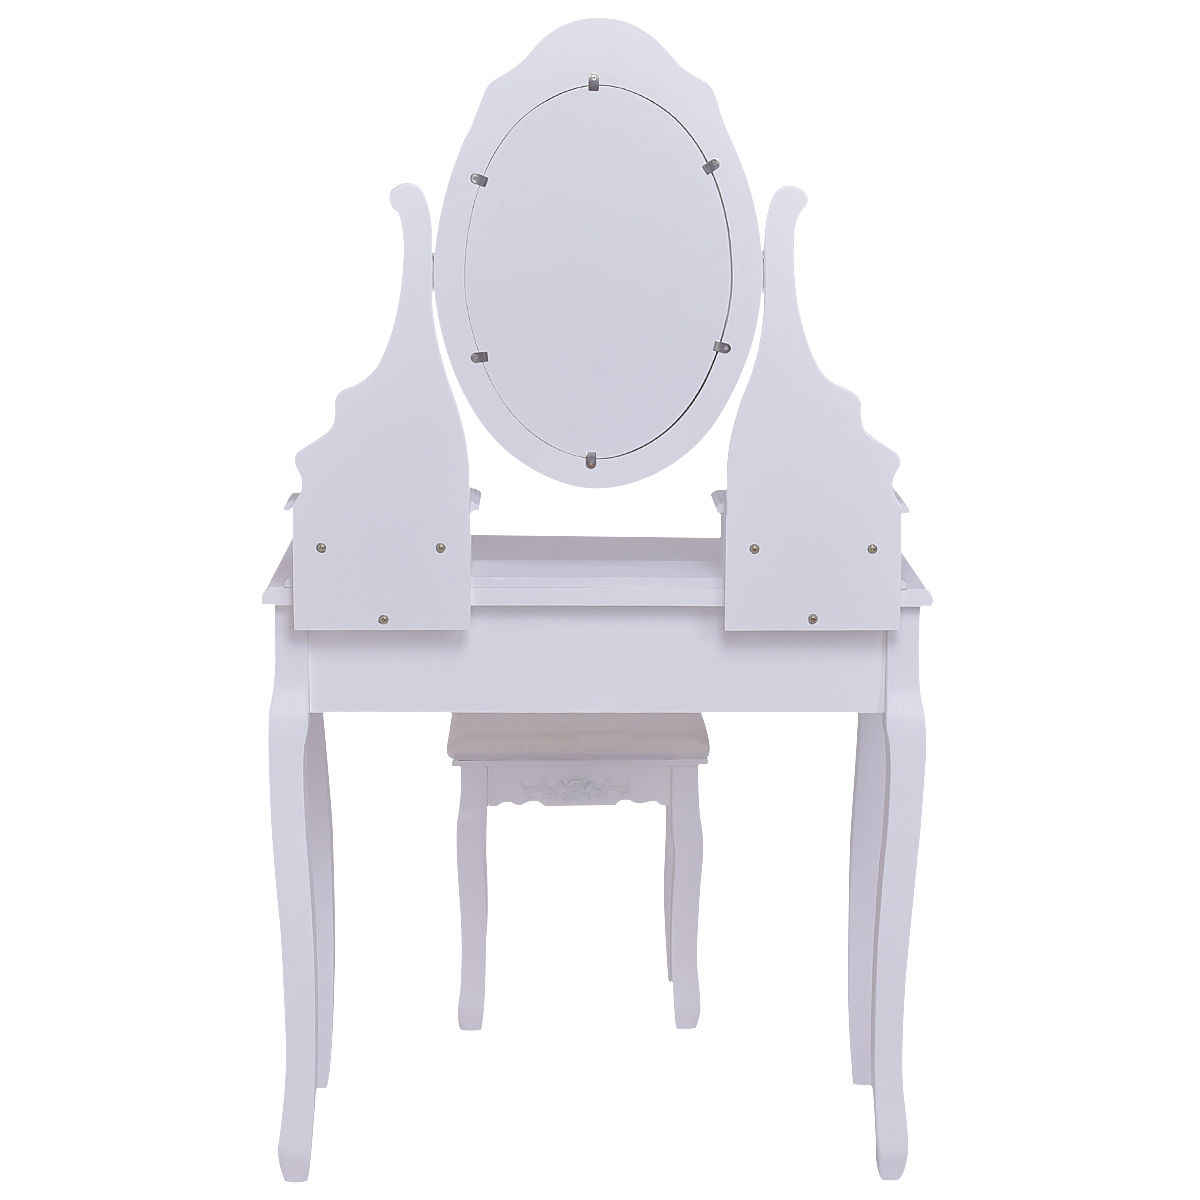 Giantex White Vanity Jewelry Wooden Makeup Dressing Table Set with Stool Mirror & 5 Drawers Modern Bedroom Dressers HW55564